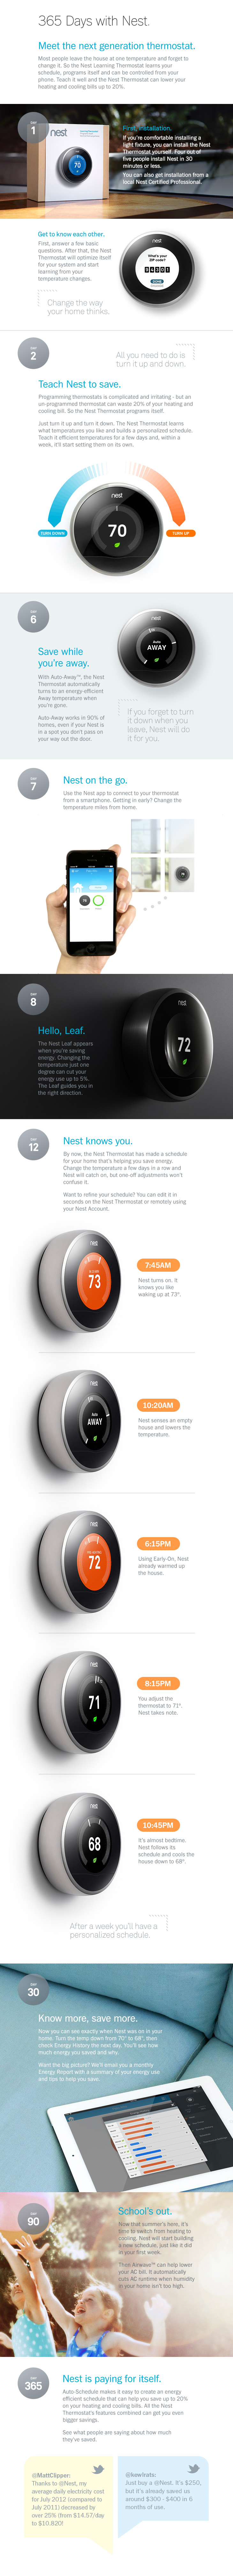 D2 Living with Nest 730-width